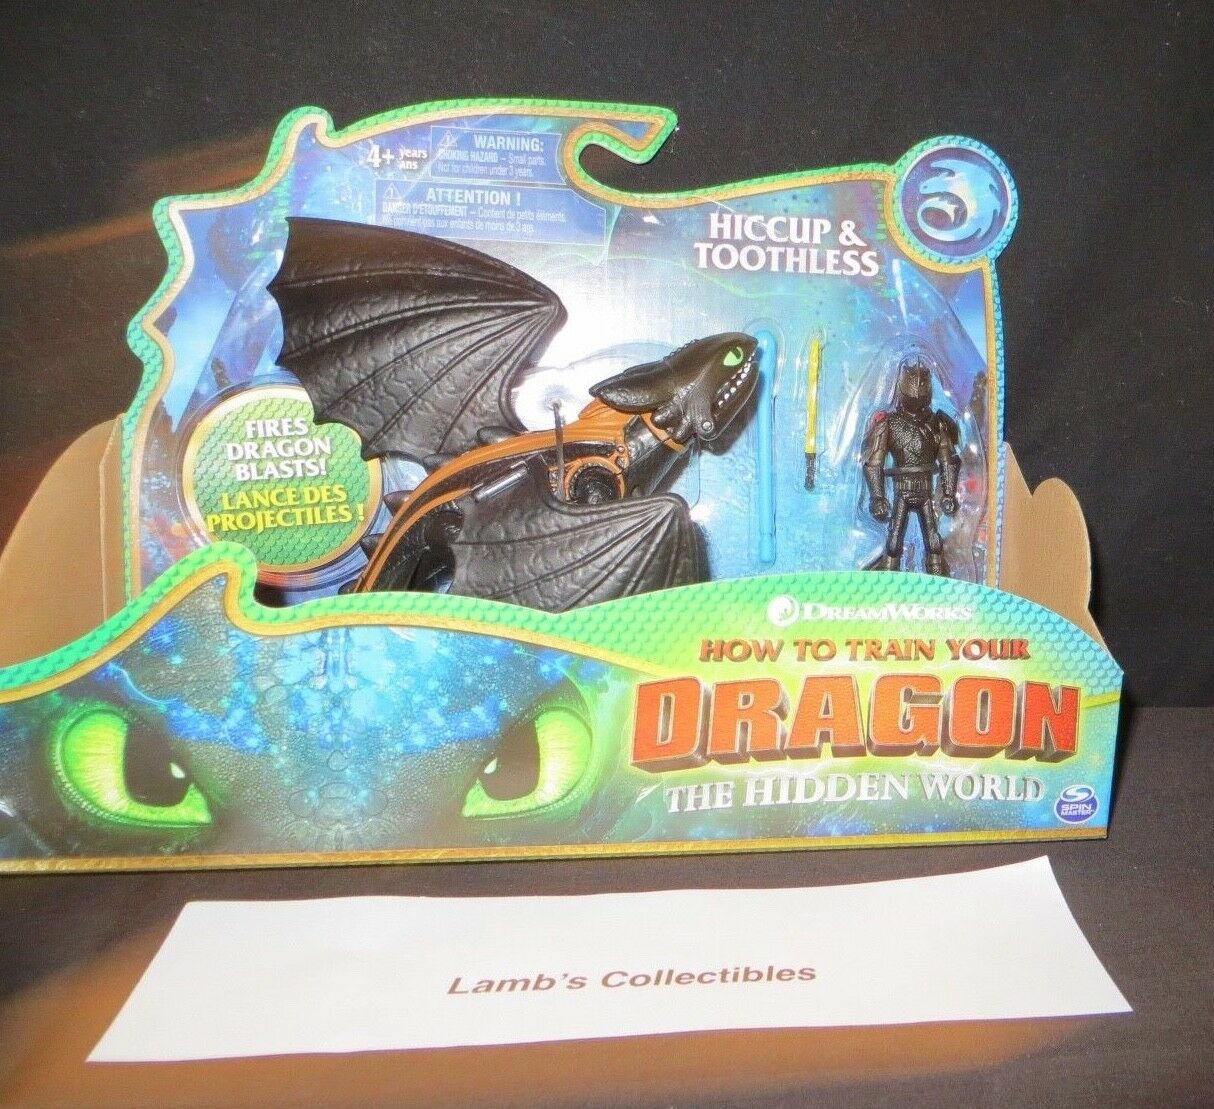 How to train your Dragon 3 The Hidden World Hiccup & Toothless dragon blast toy